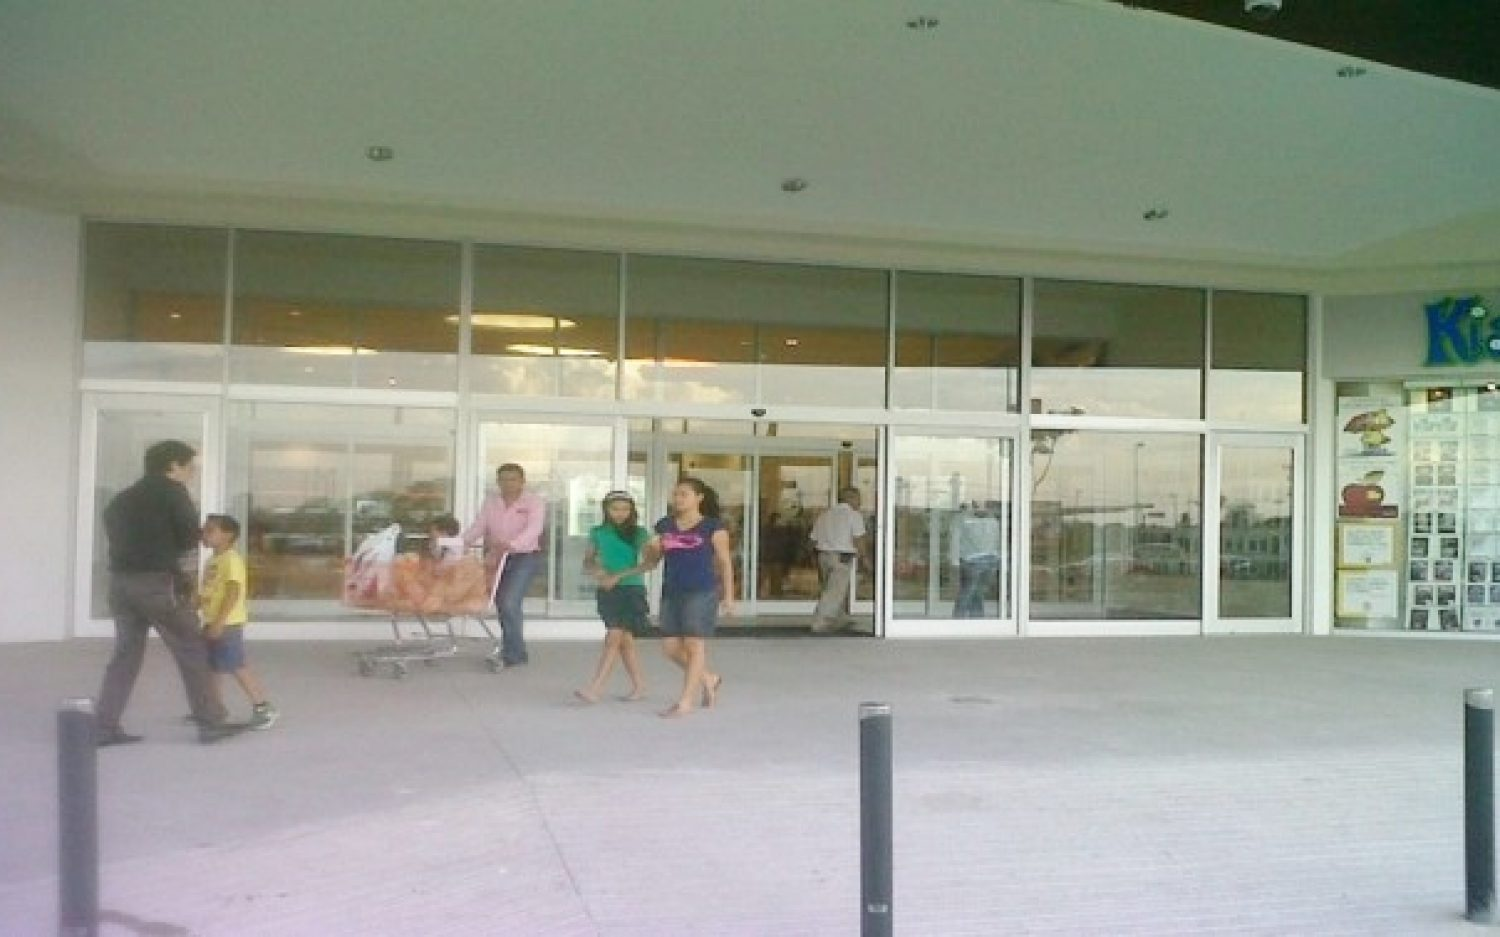 Co-Plaza Sendero Villahermosa (15)